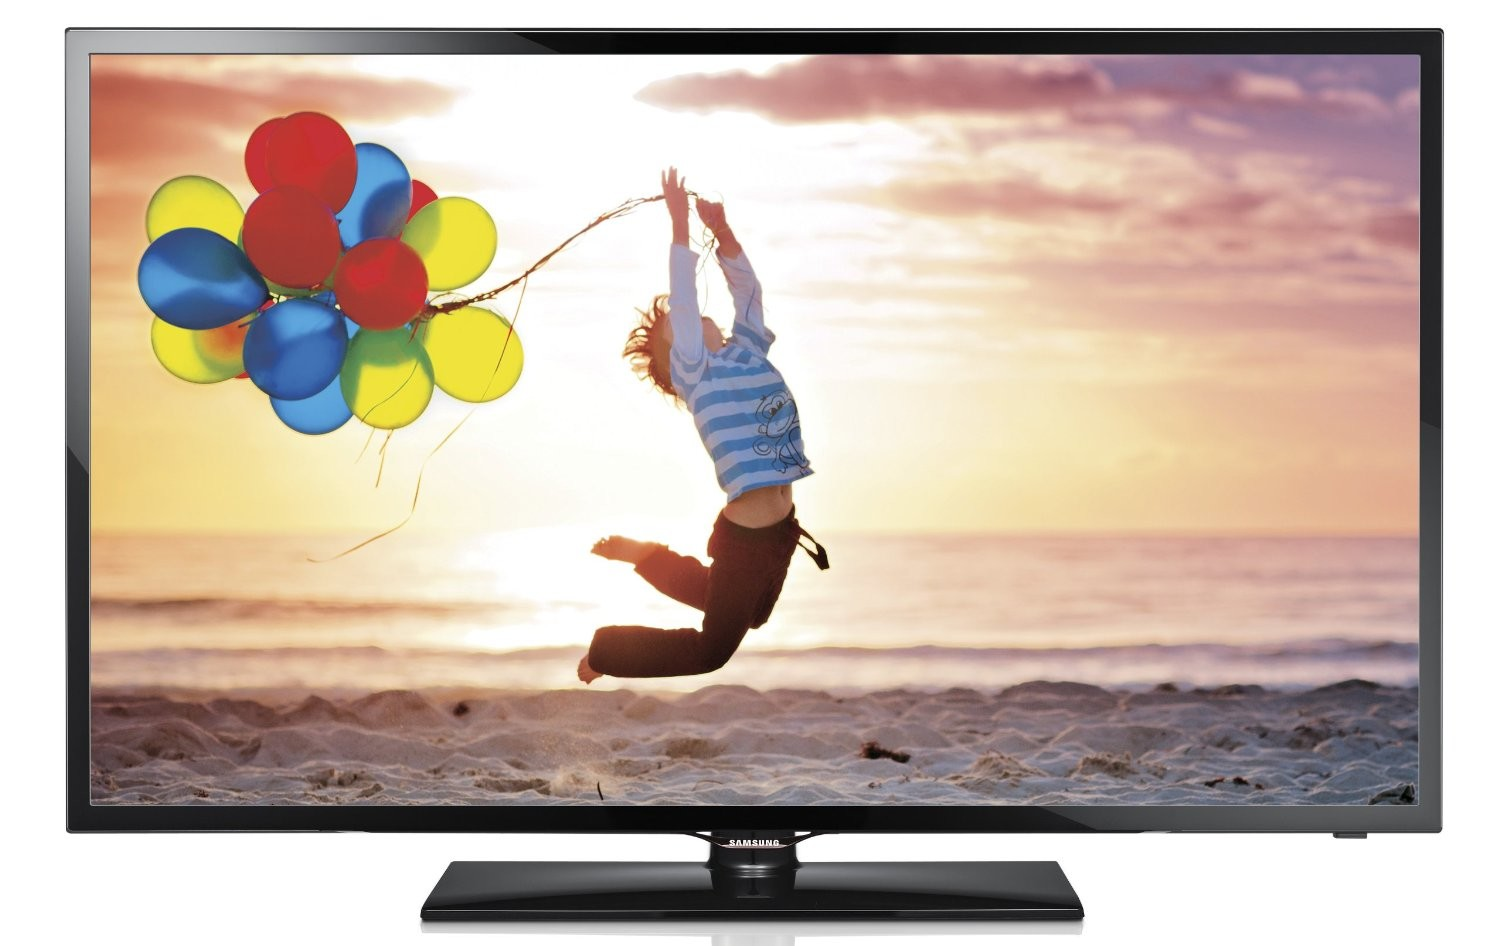 Samsung Flat Screen Tv Price Cheap Flat Screen Tv On A Budget Blogtechtips